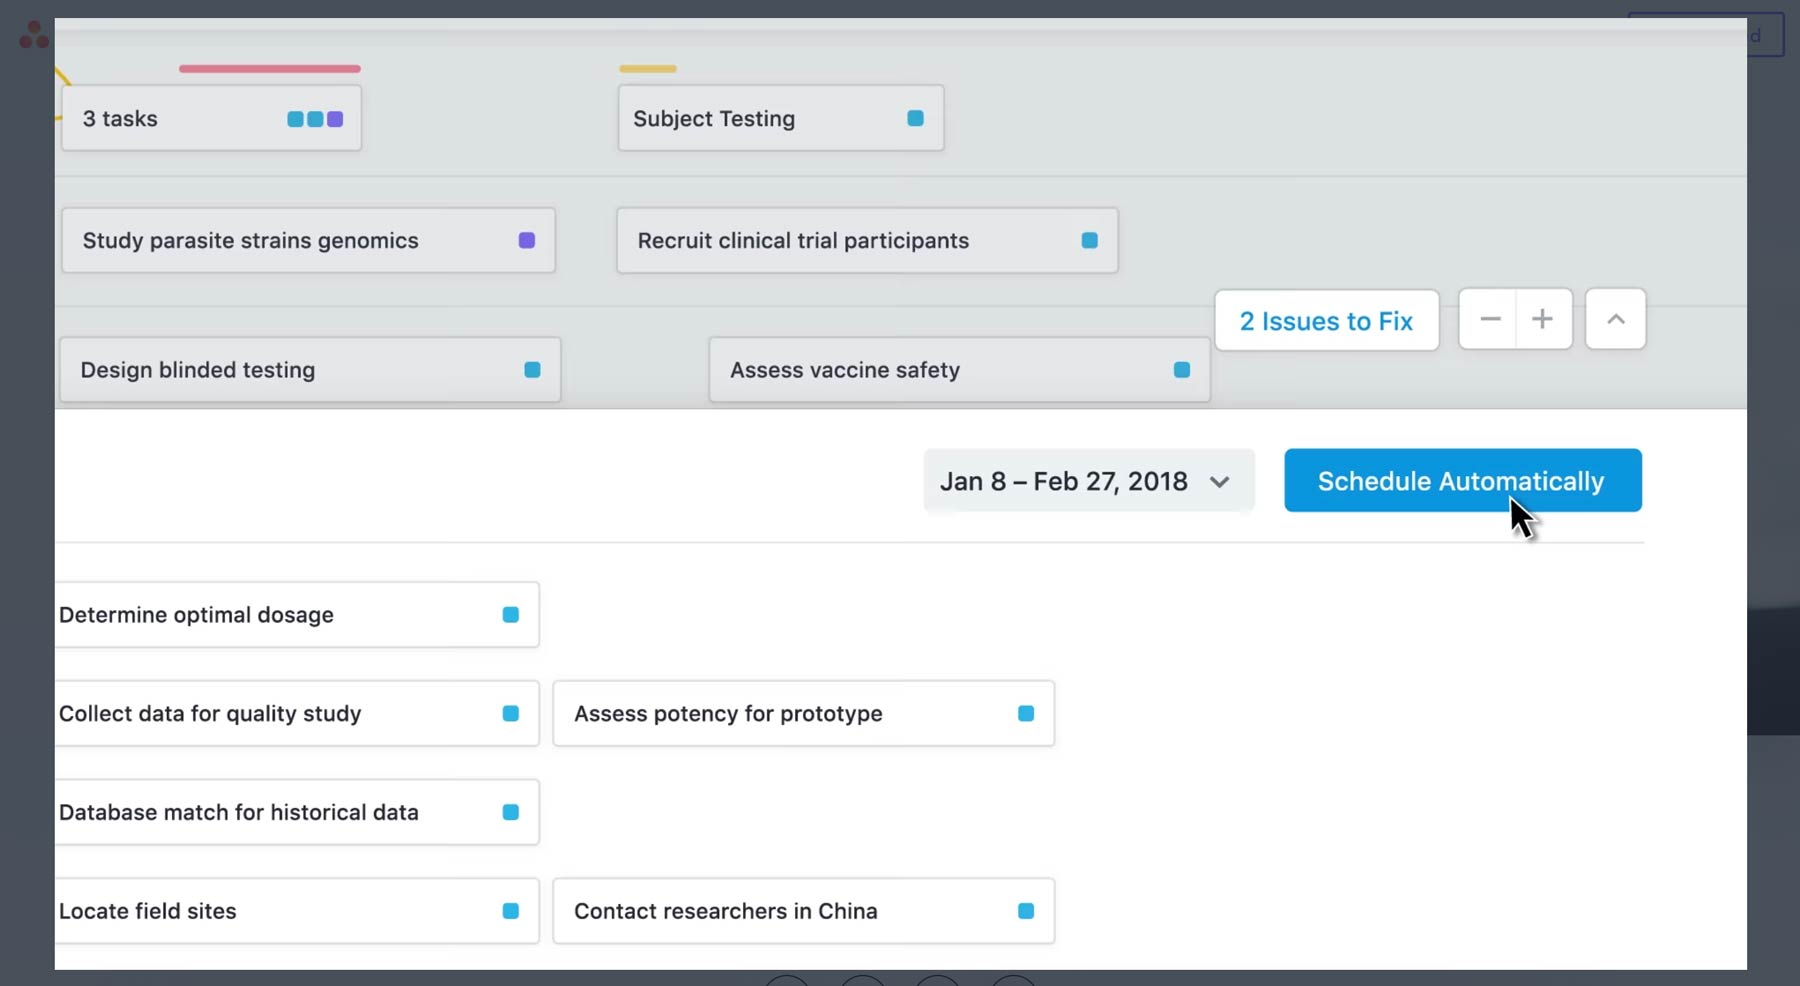 Asana Schedule Automatically